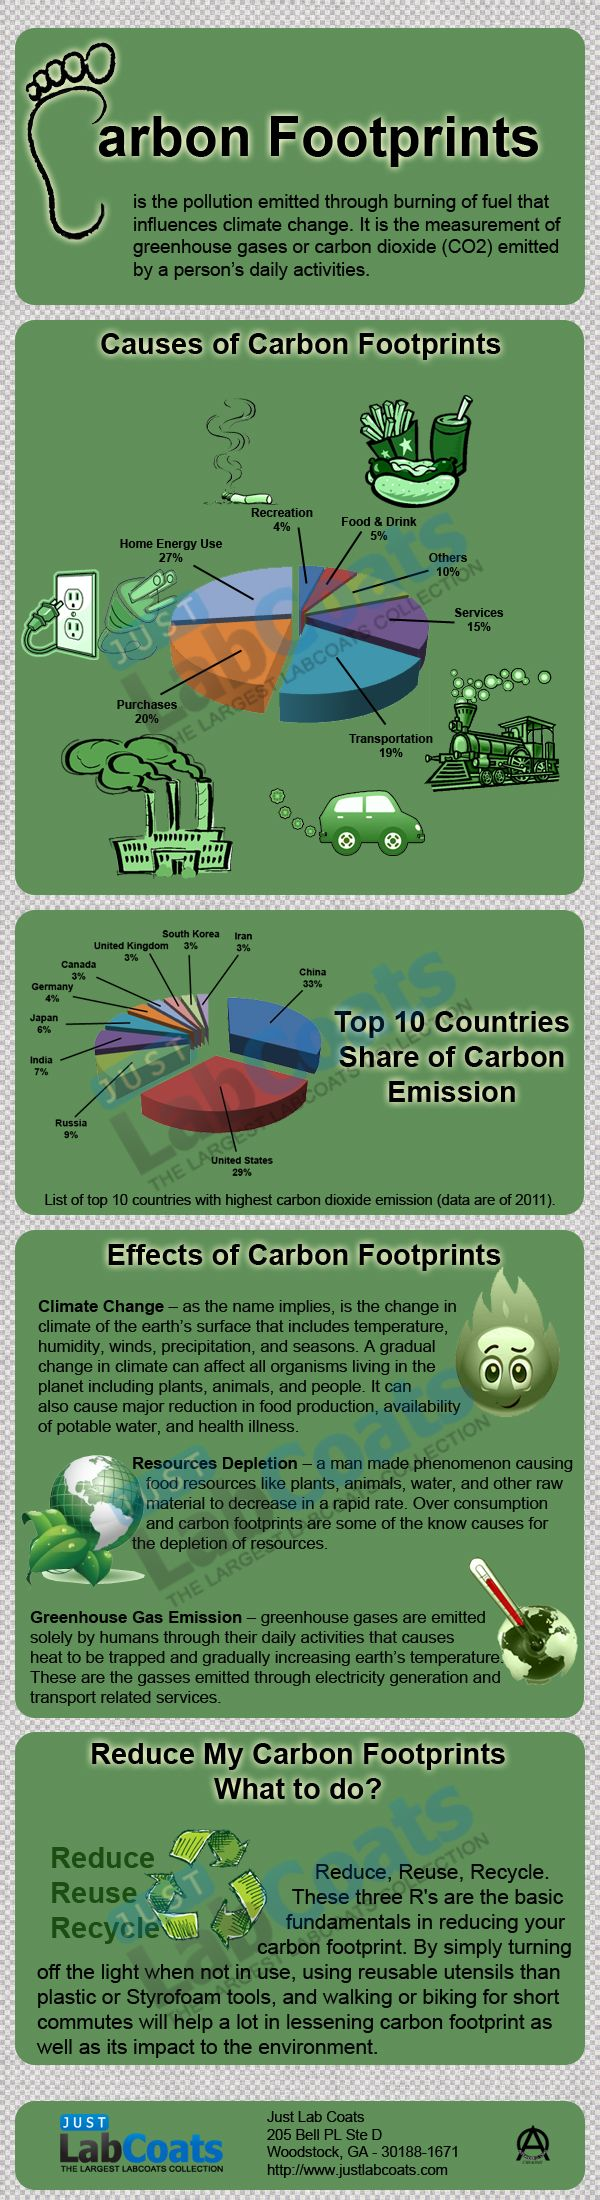 Carbon Footprints #INFOGRAPHIC